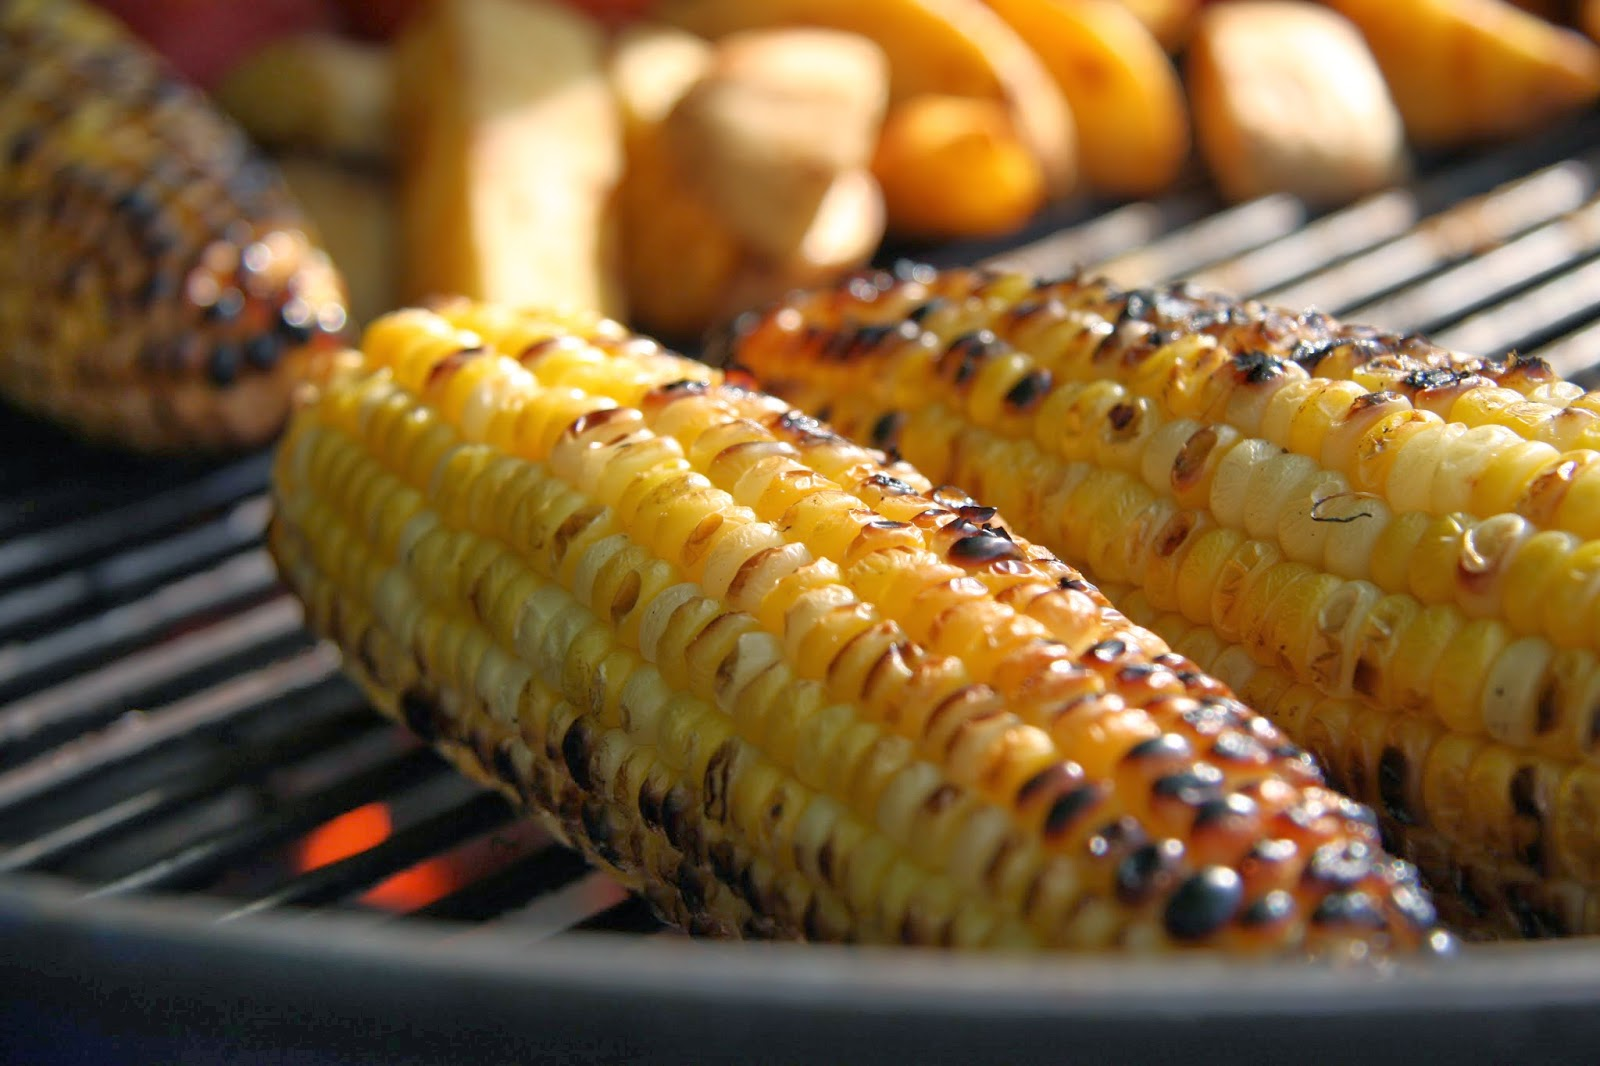 Smell a fragrance of grilled corns